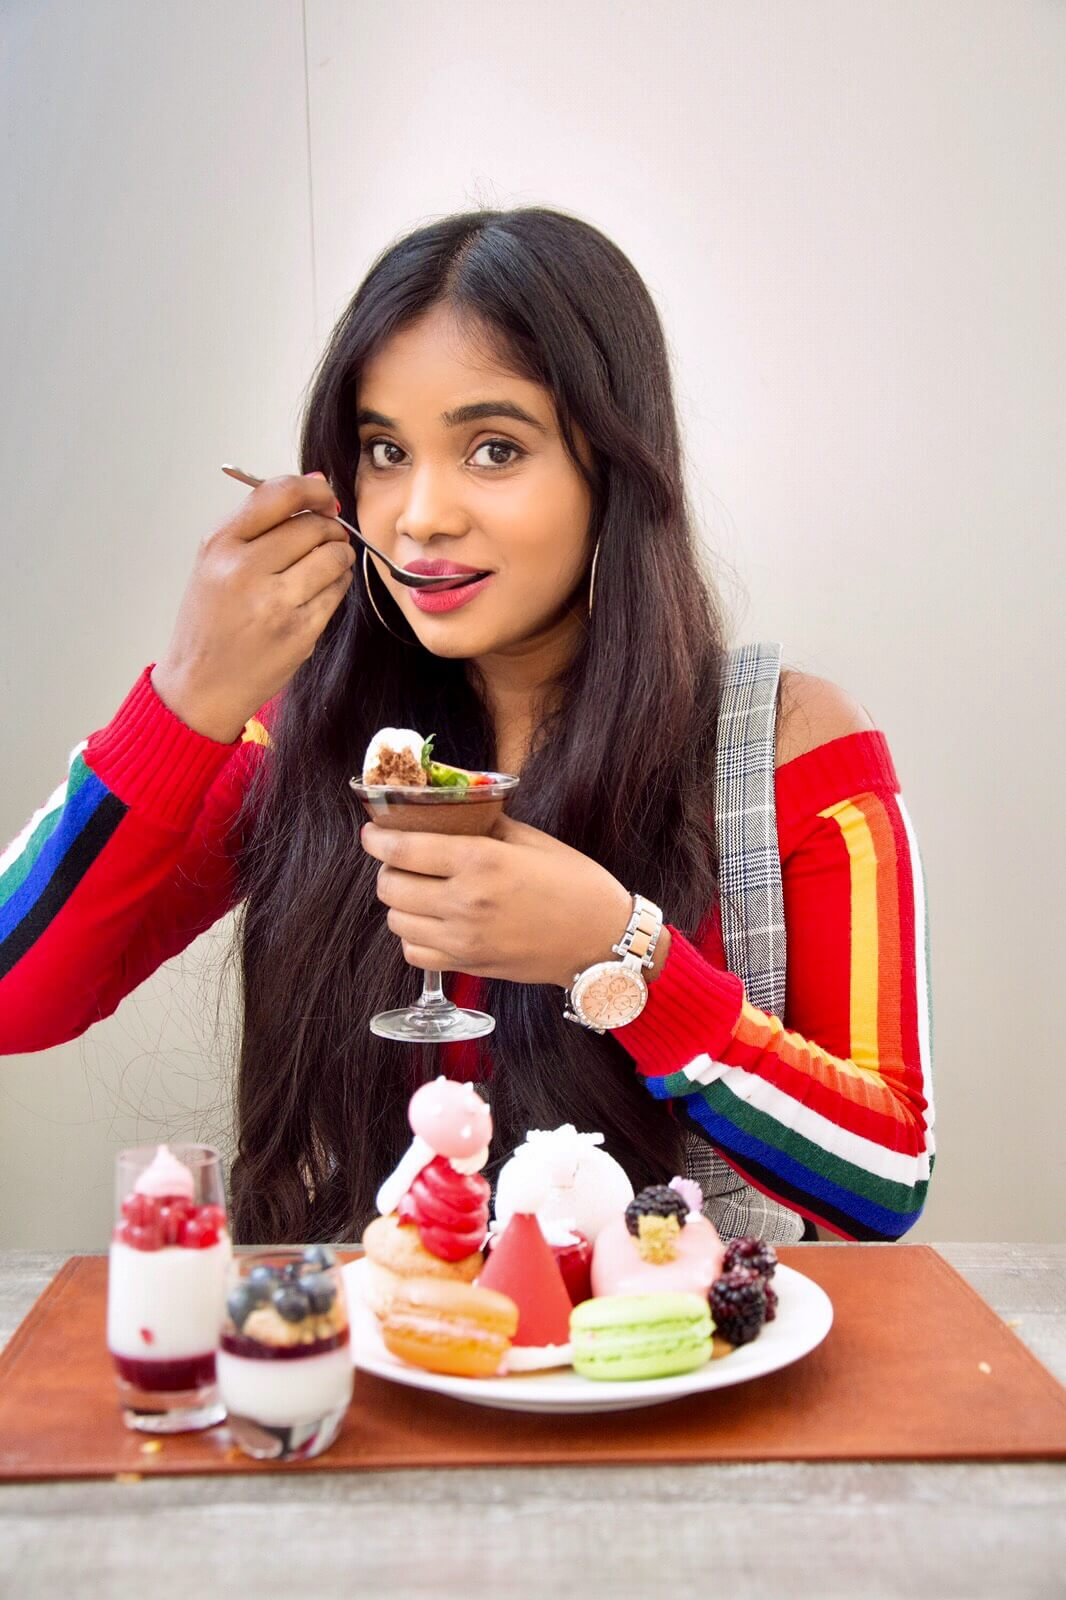 girl eating cakes